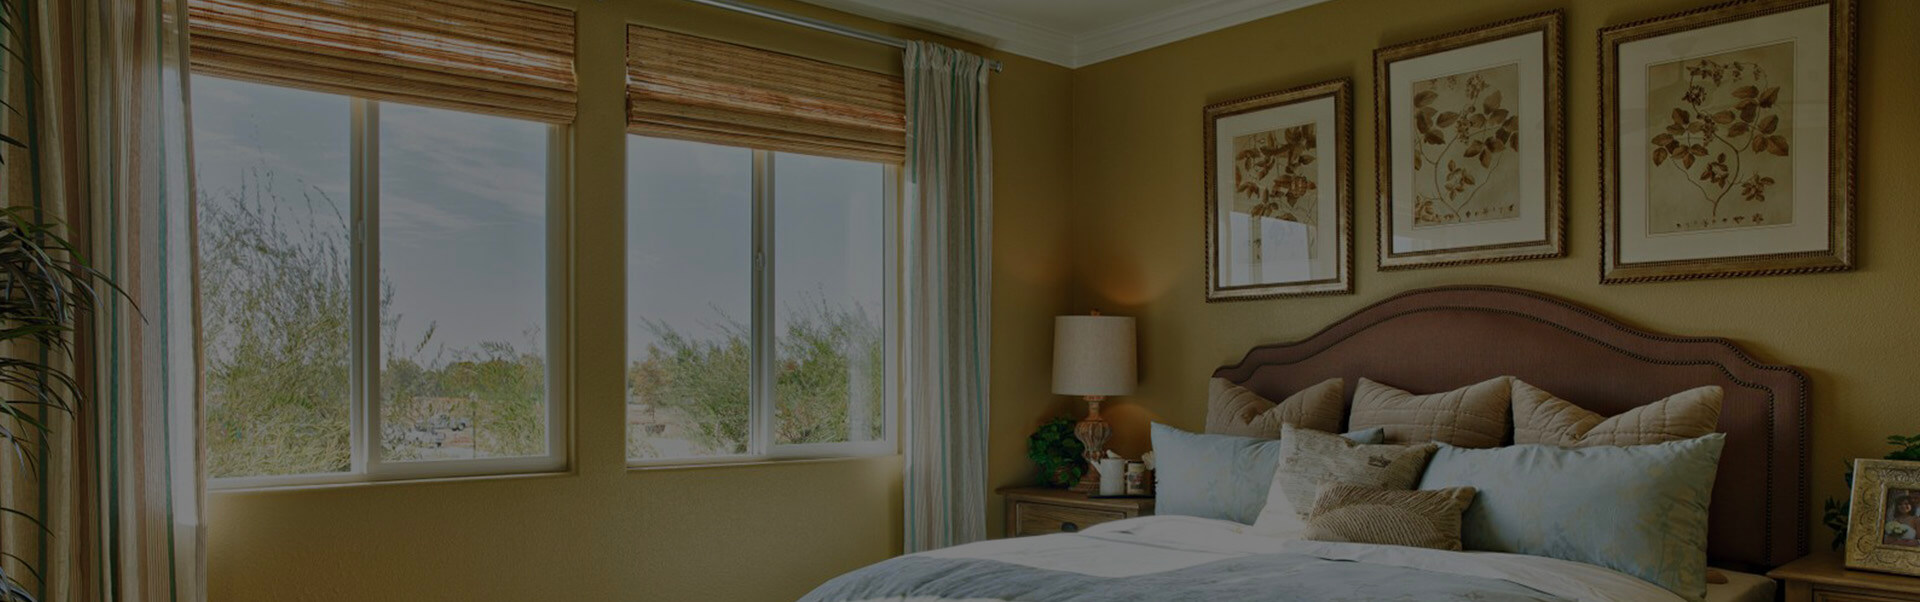 sliding windows in a bedroom